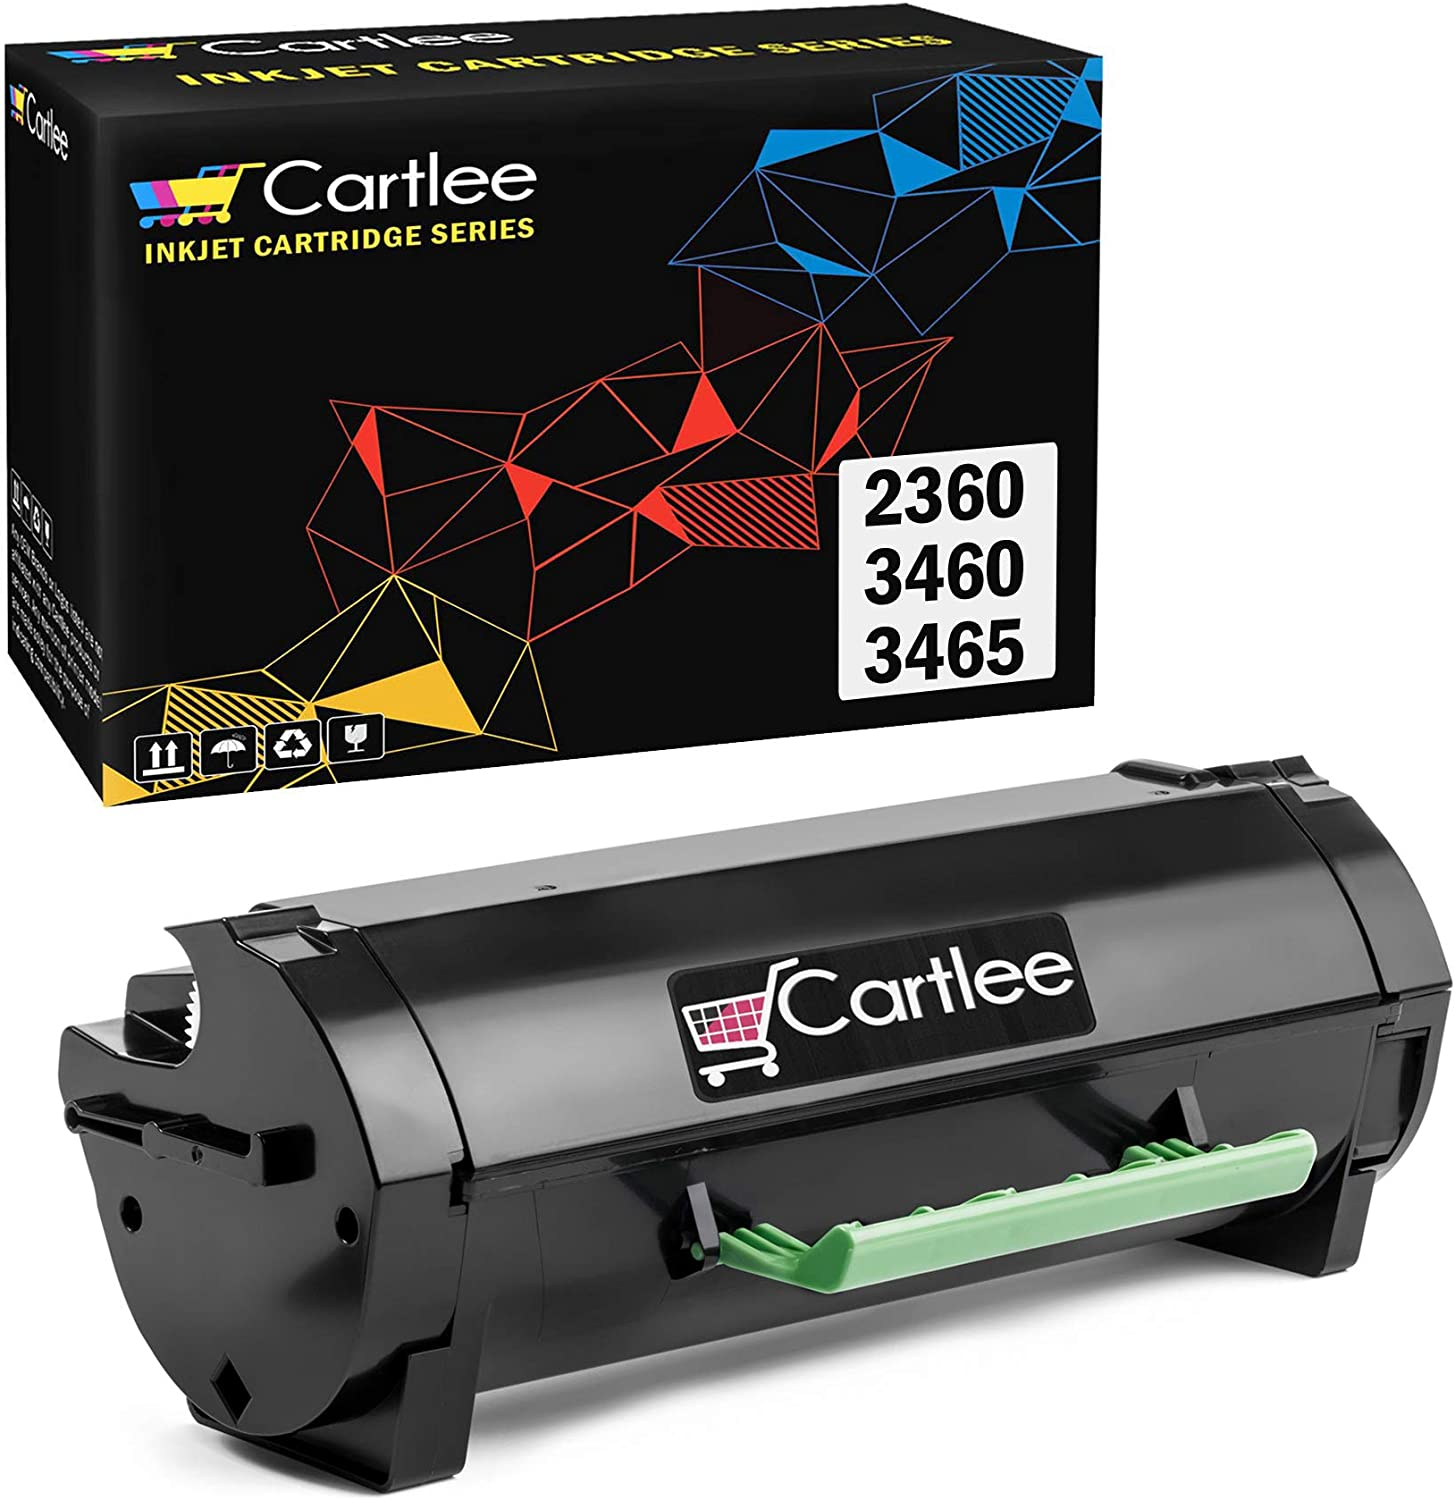 Cartlee 1 Remanufactured High Yield Laser Toner Cartridges Replacement for Dell B2360 B3460 B3465 B2360d B2360dn B3460dn B3465dn B3465dnf 2360 3460 3465 2360d 2360dn 3460dn 3465dn M11XH Printer